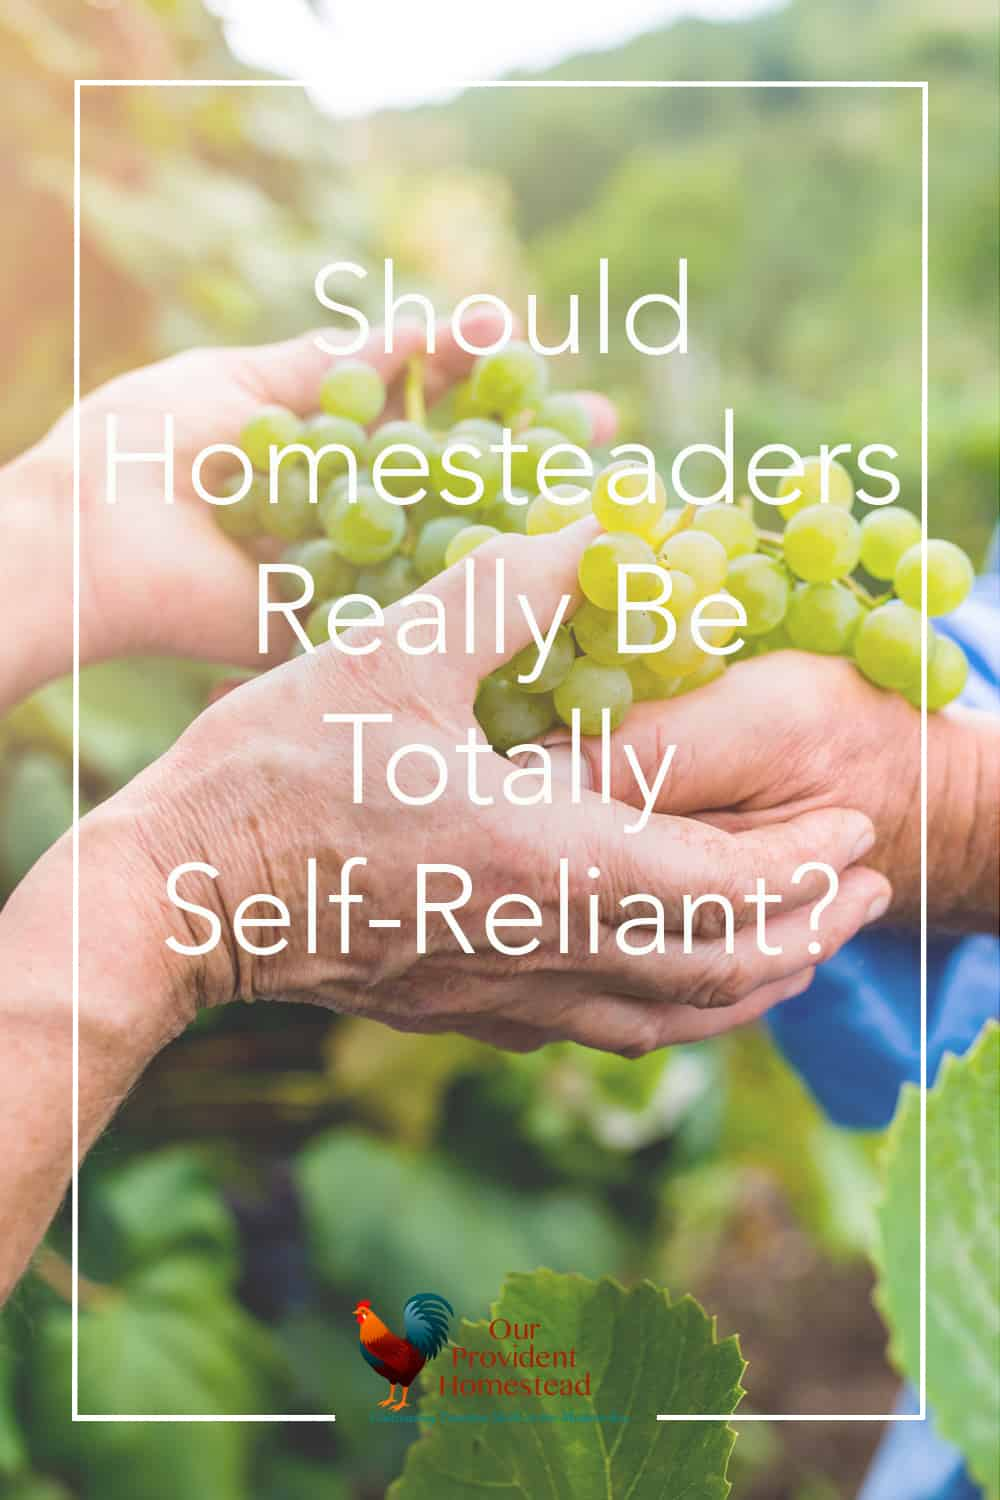 Are homesteaders really self-reliant? Click here to see why even though we work towards the goal of self-reliance, we don't want to get there. #community #selfreliance #homesteading